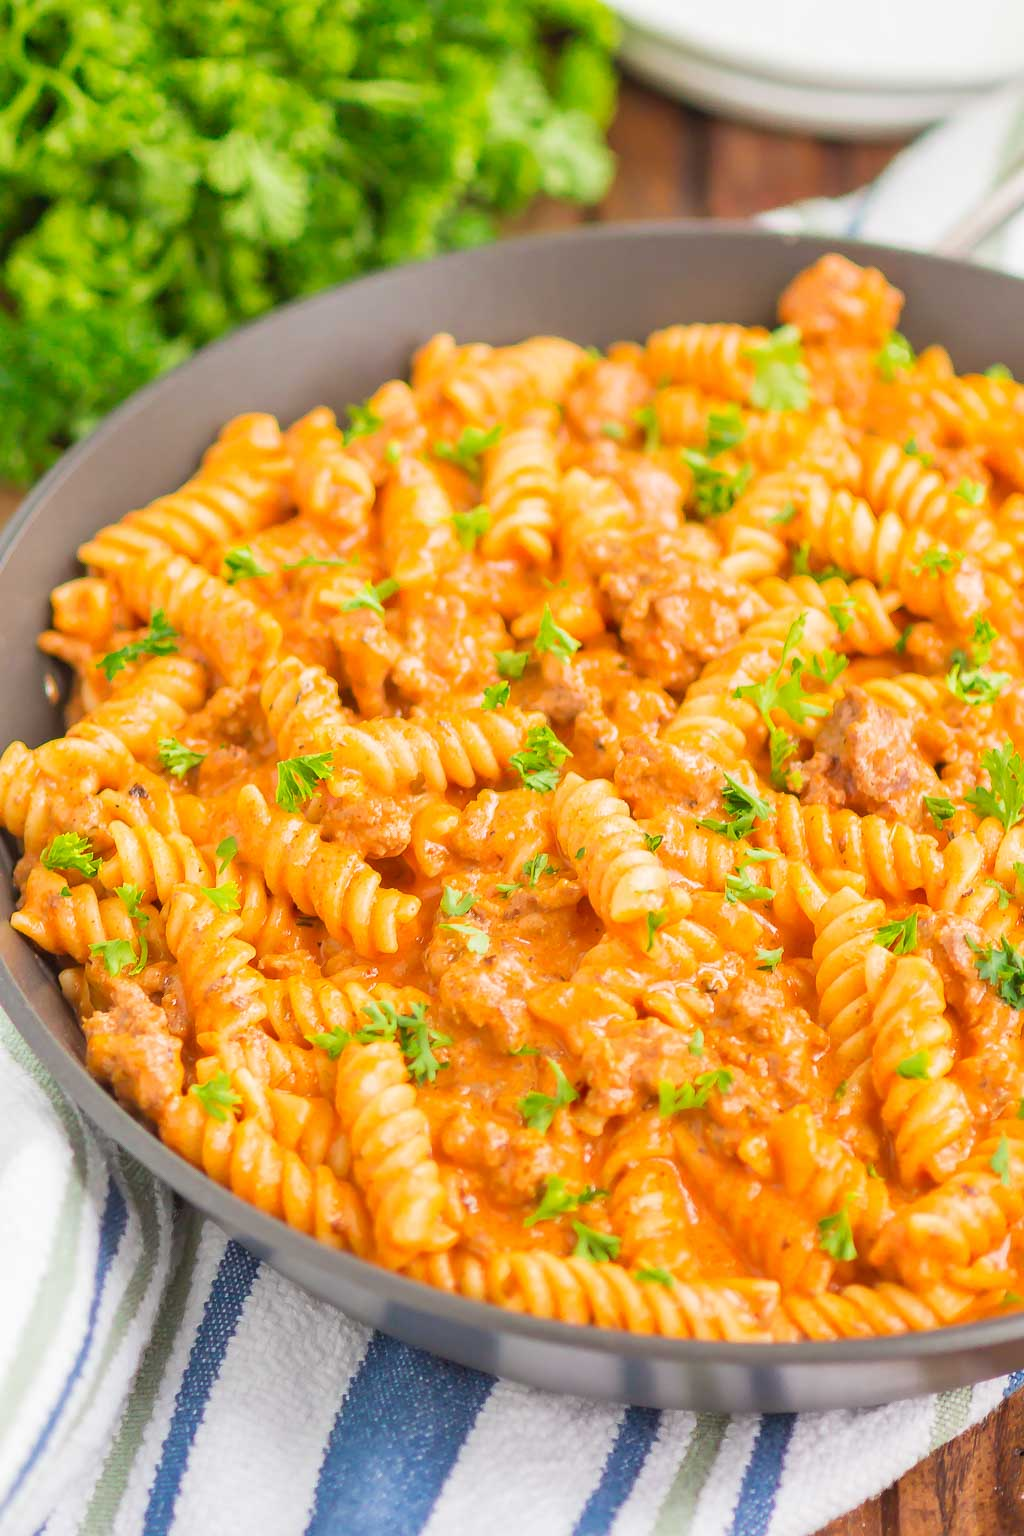 Creamy Ground Beef Pasta is an easy weeknight meal that's ready in just 30 minutes. Fast, fresh, and flavorful, this hearty meal will quickly become a favorite!